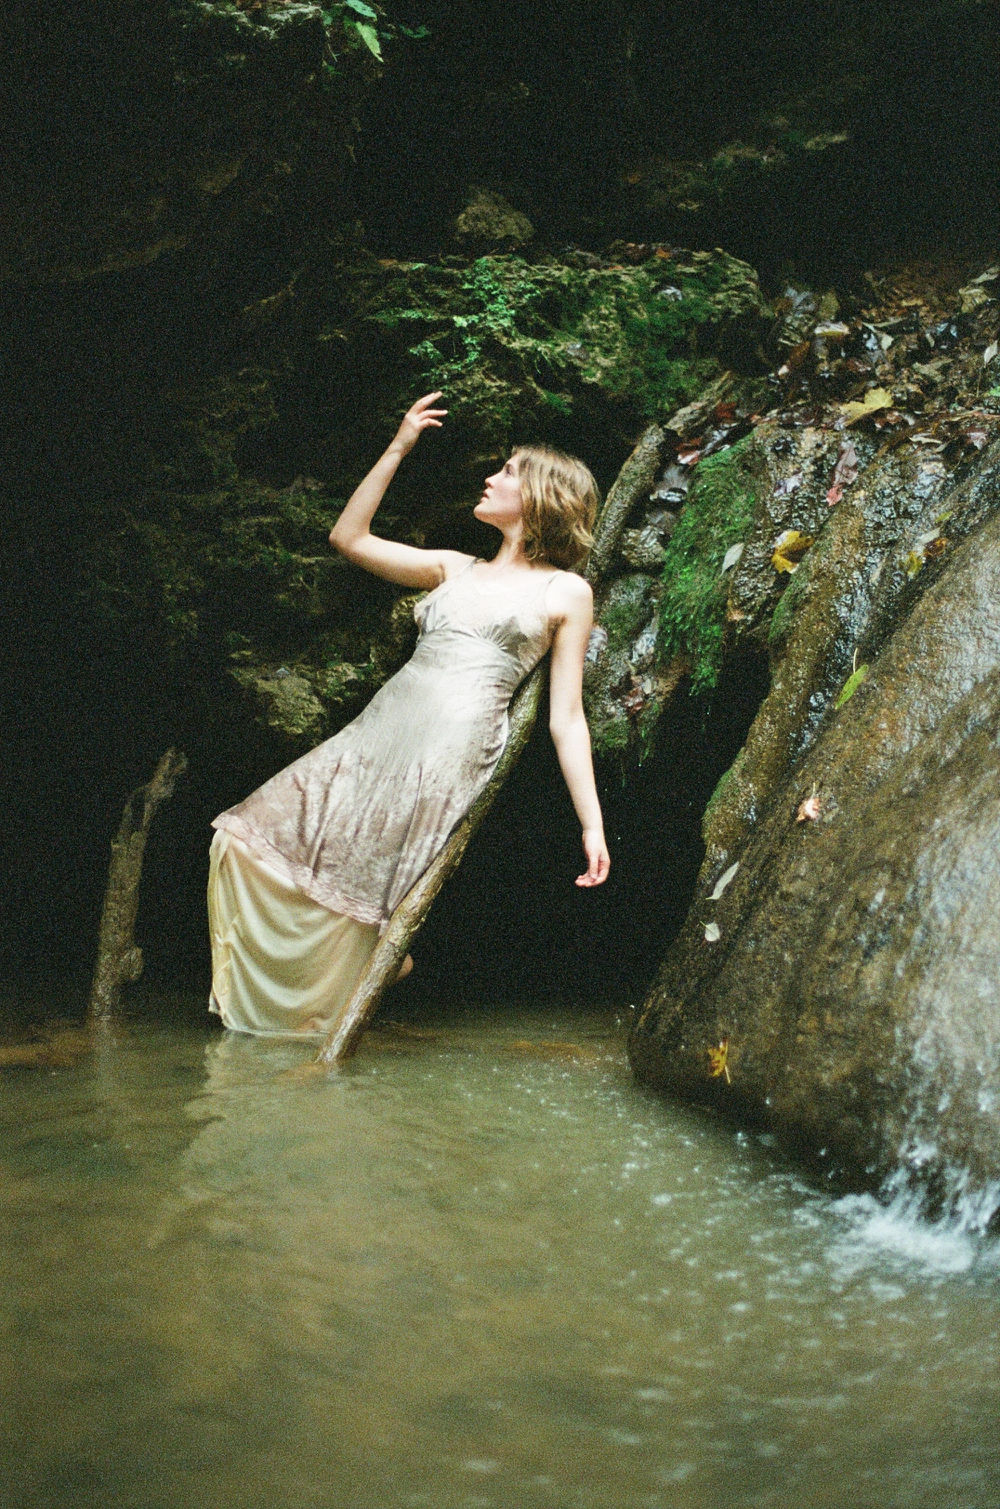 creative-film-photography-mermaidens-portrait-series-by-holly-cromer-02.jpg